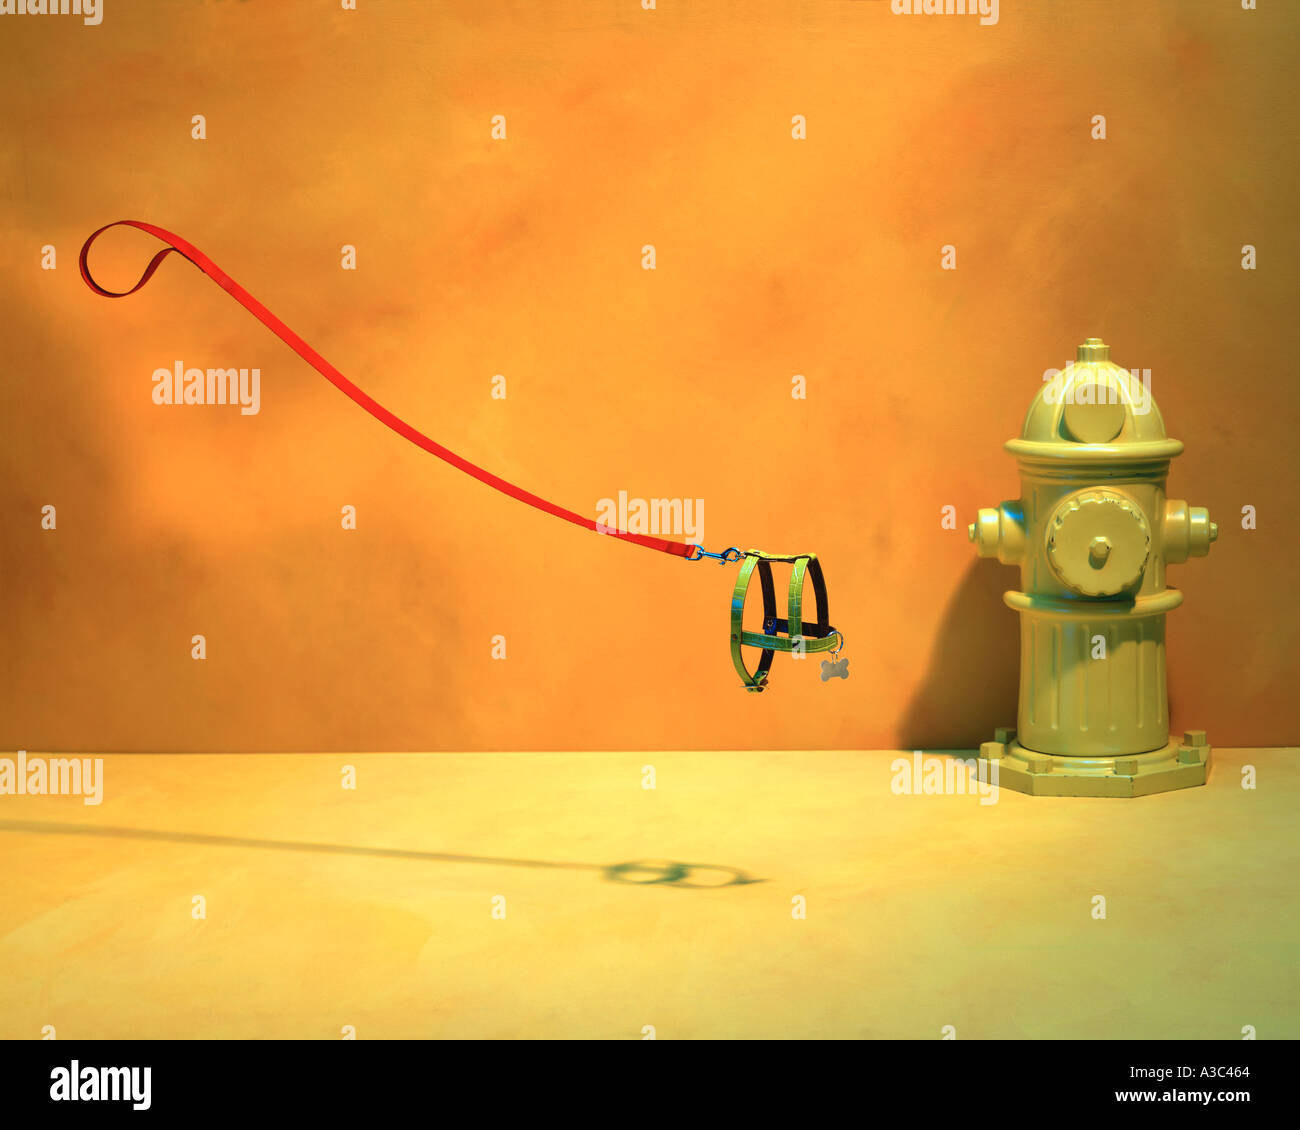 Invisible dog with leash and fire hydrant by Pete McArthur 2007 - Stock Image